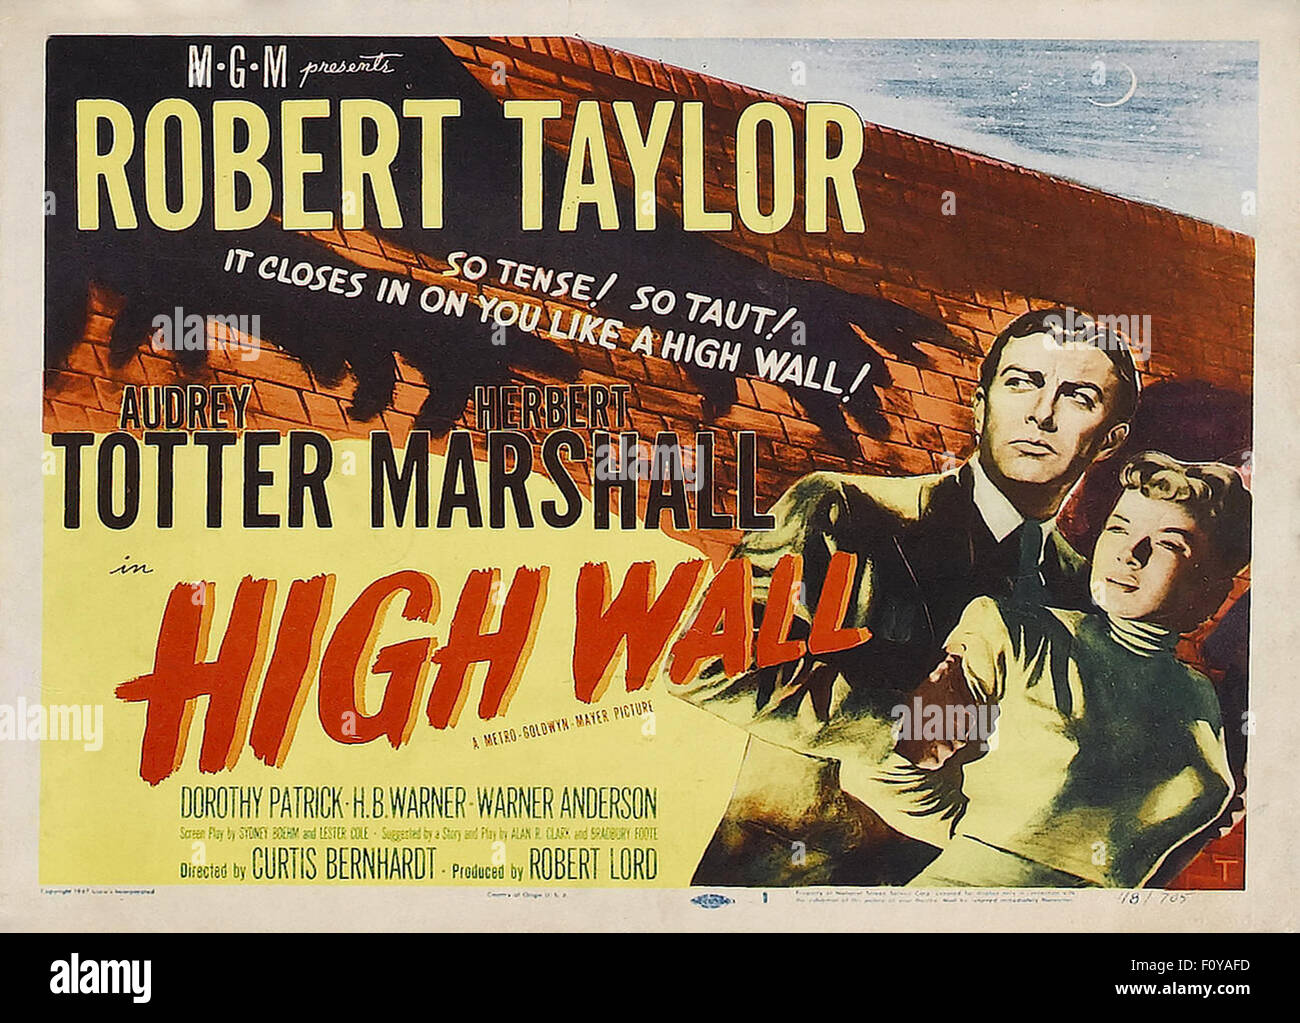 High Wall - 02 - Movie Poster - Stock Image